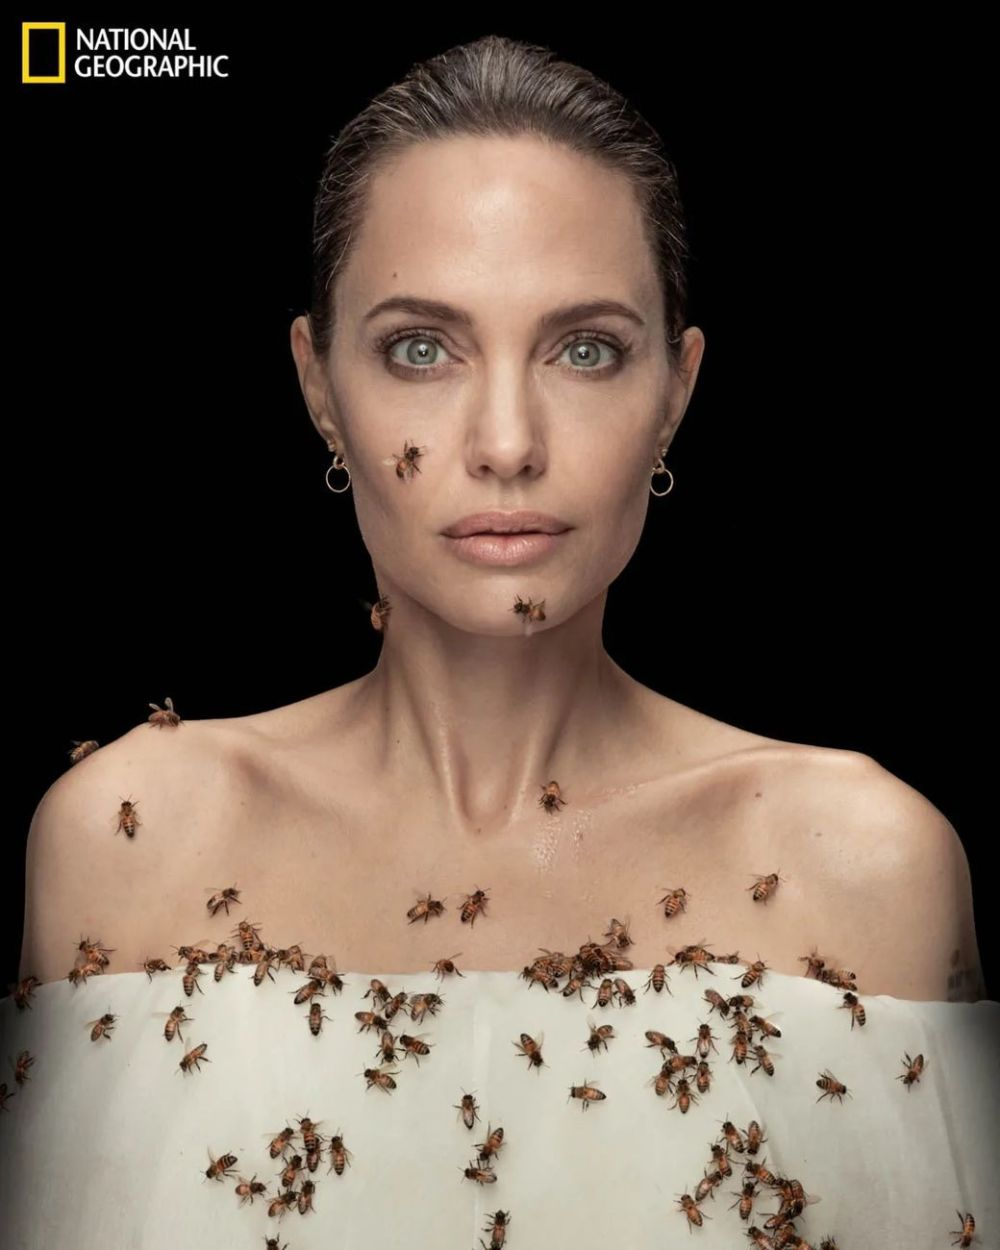 Angelina Jolie for World Bee Day 2021 © Dan Winters National Geographic